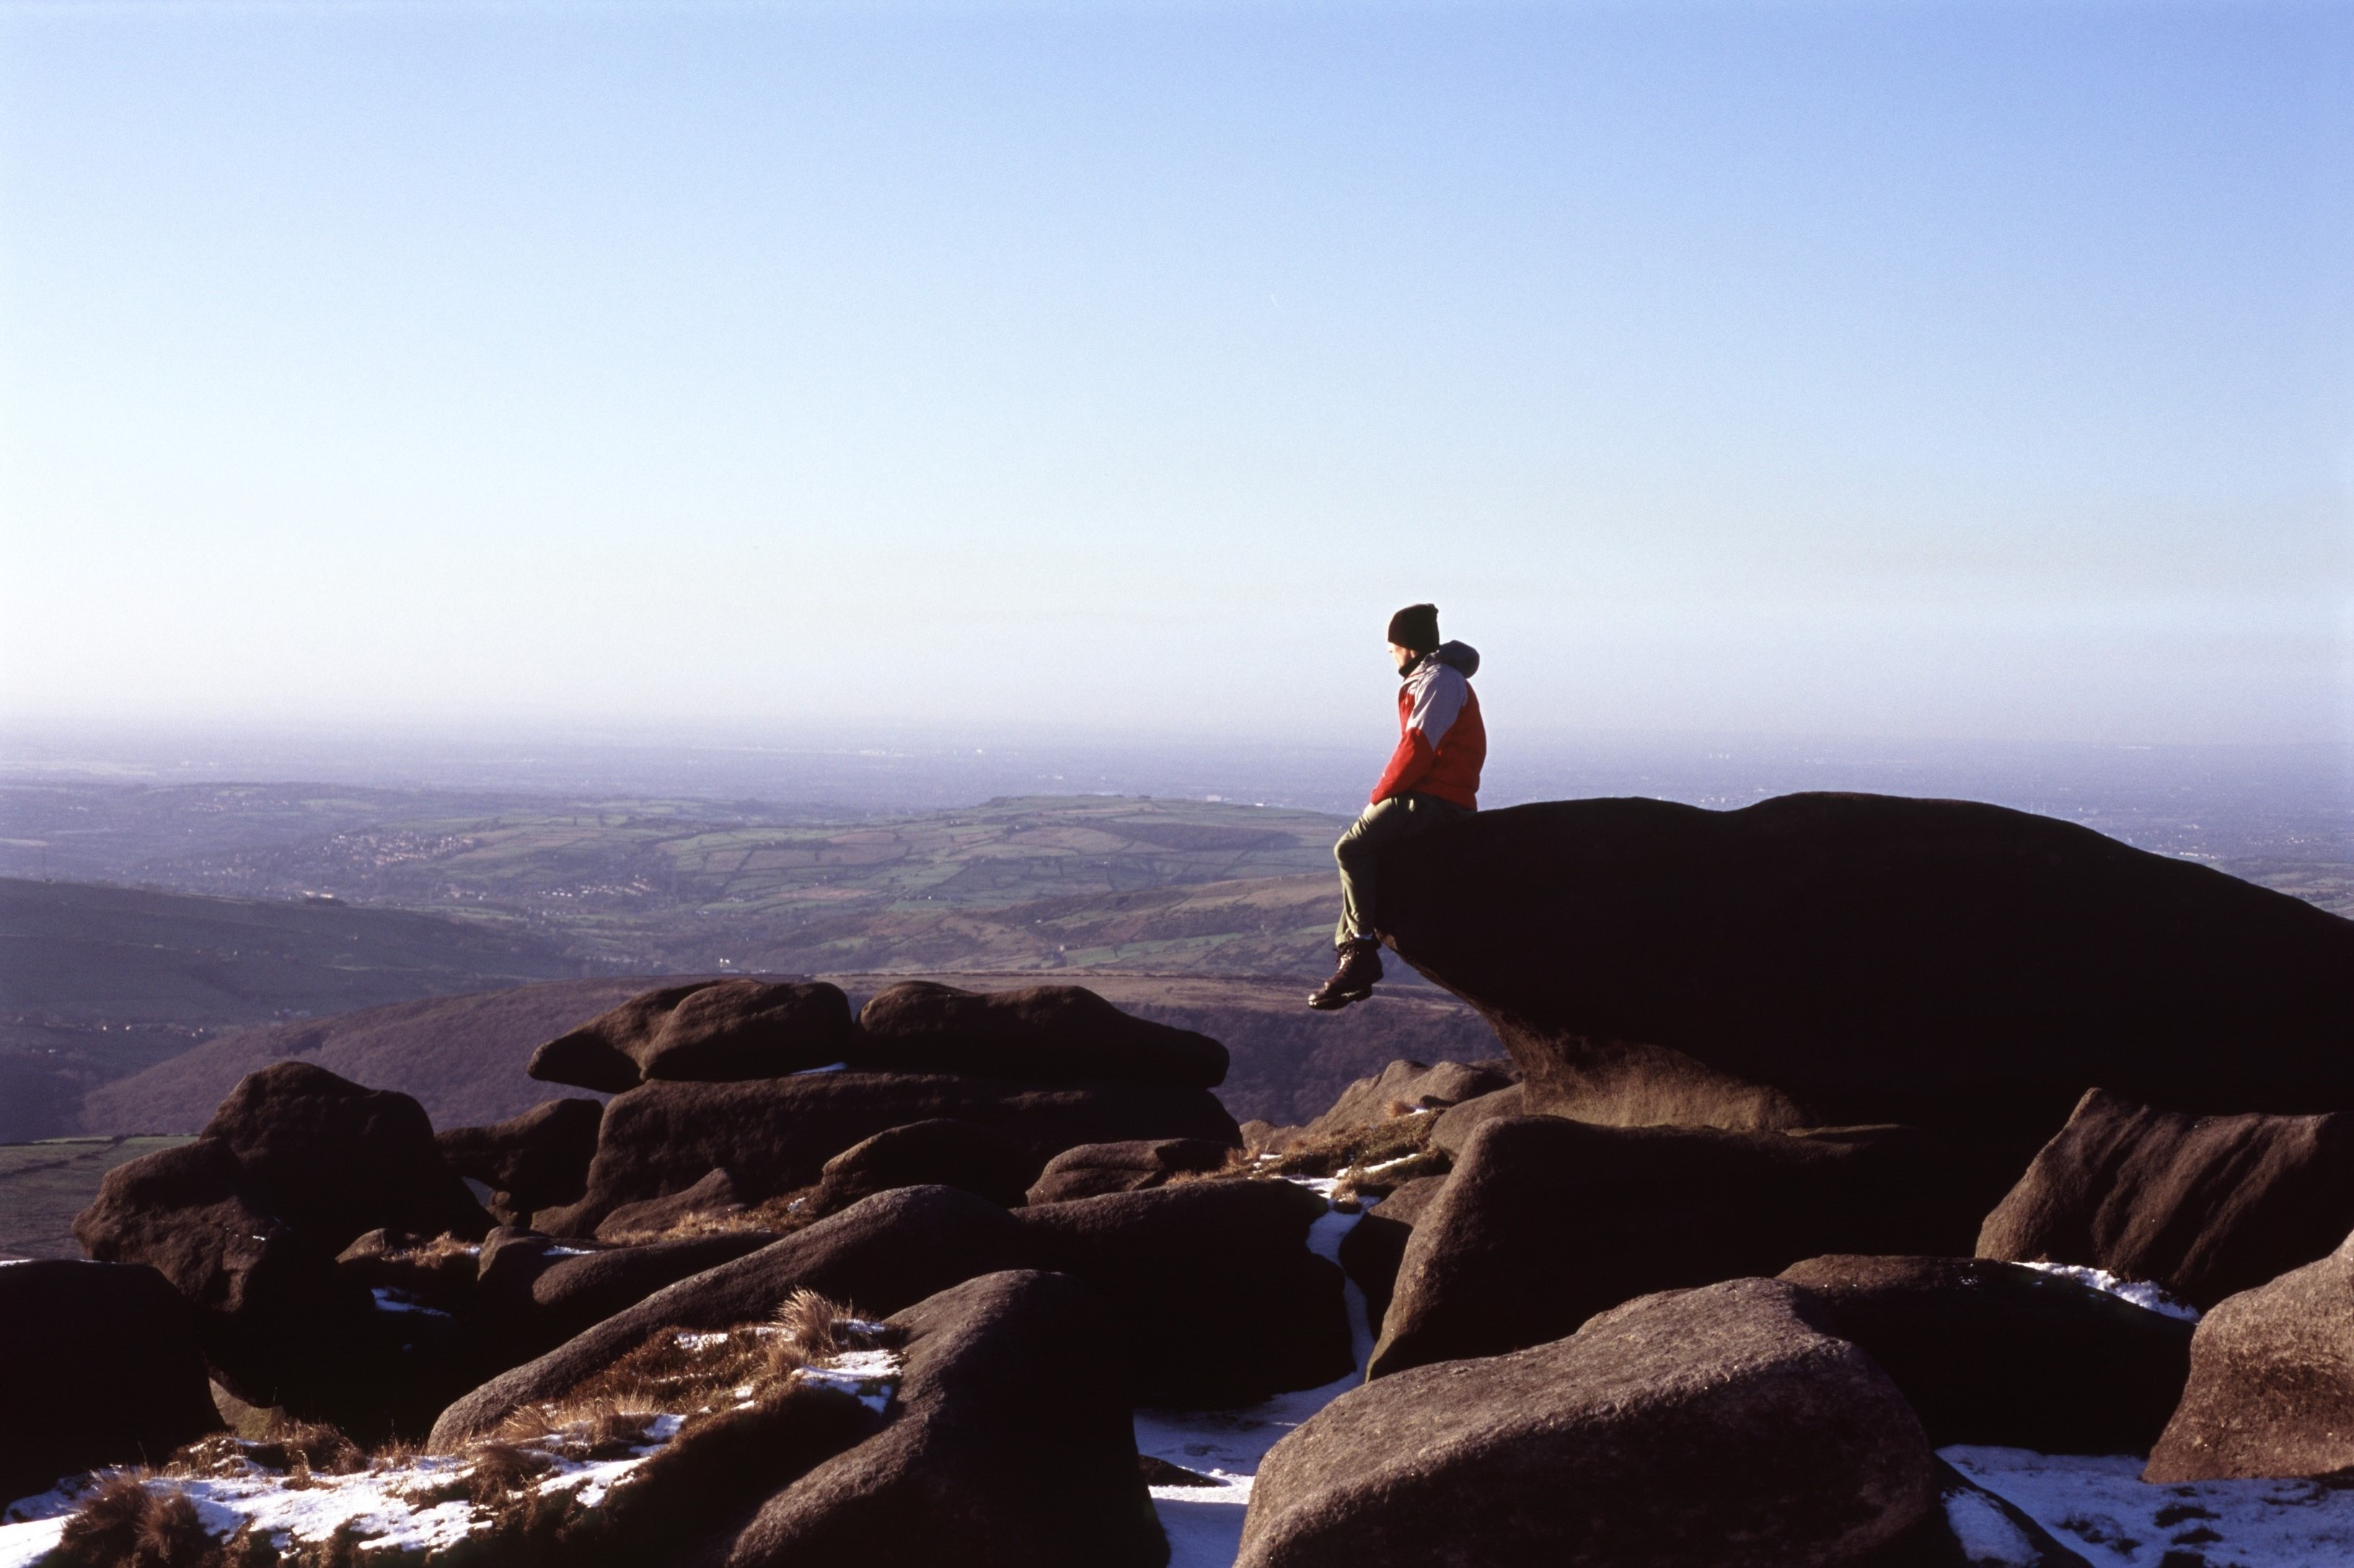 Lone figure of a man sitting on a mountain peak on the edge of a rock with scattered snow overlooking mountain ranges and valleys as he contemplates nature